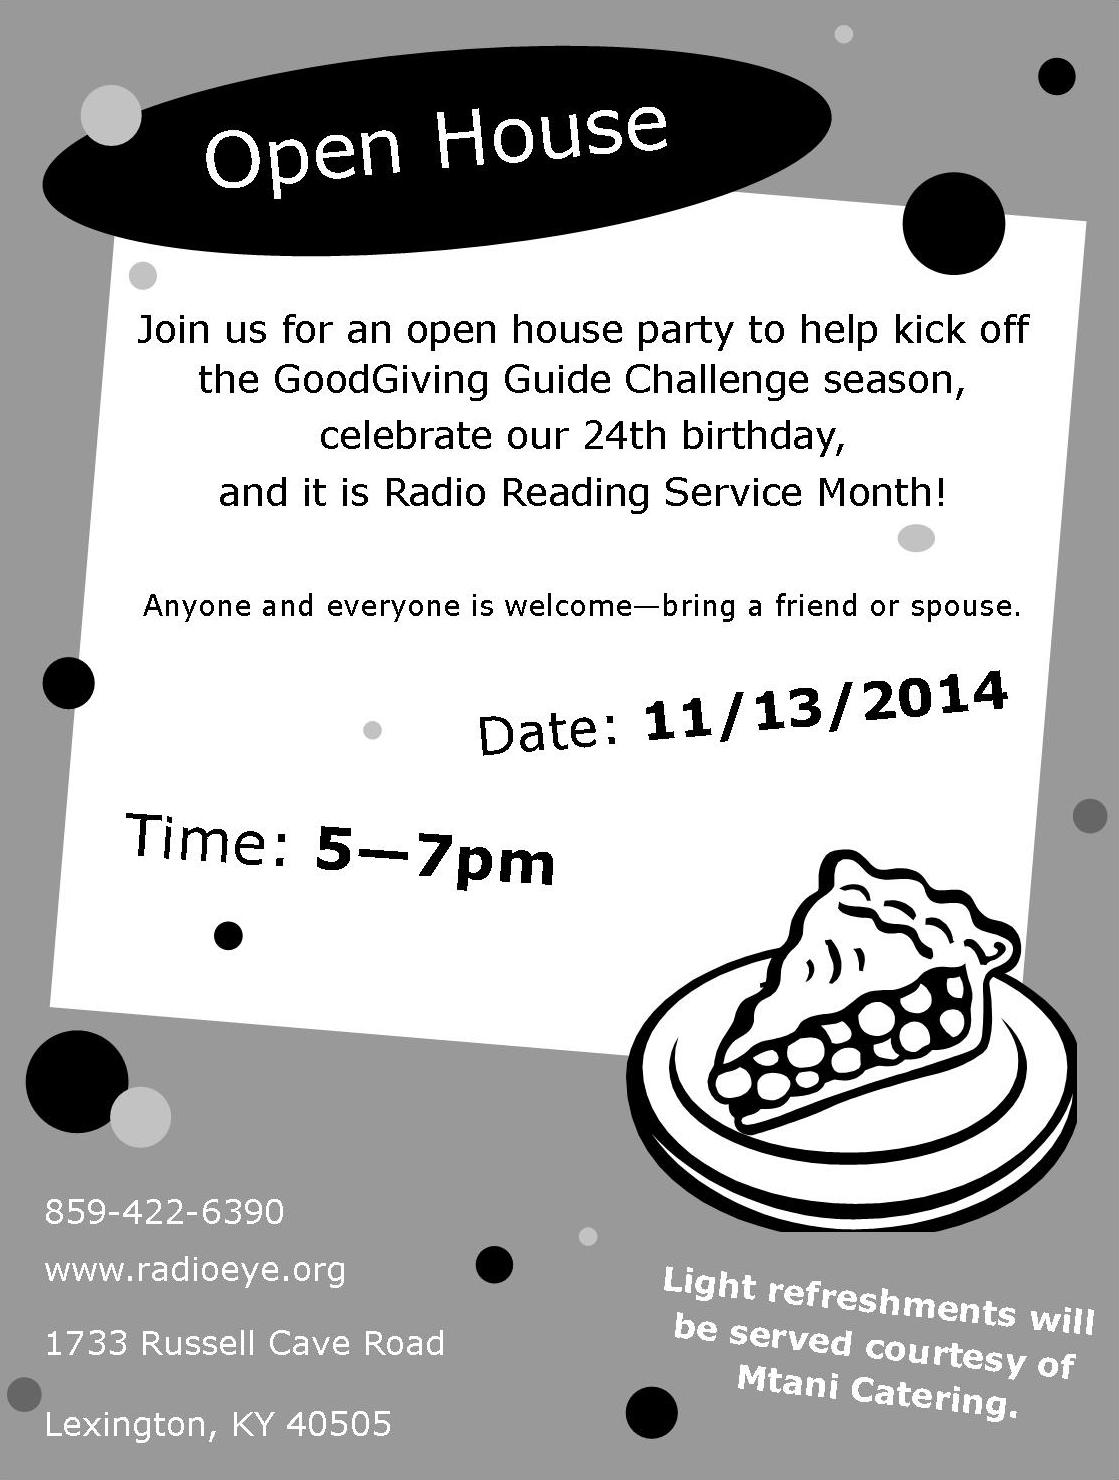 """""""Open House"""" flyer Join us for an open house party on November 13th from 5-7 pm, to kick off the GoodGiving Guide Challenge Season and celebrate our twenty fourth birthday and Radio Reading Service Month."""